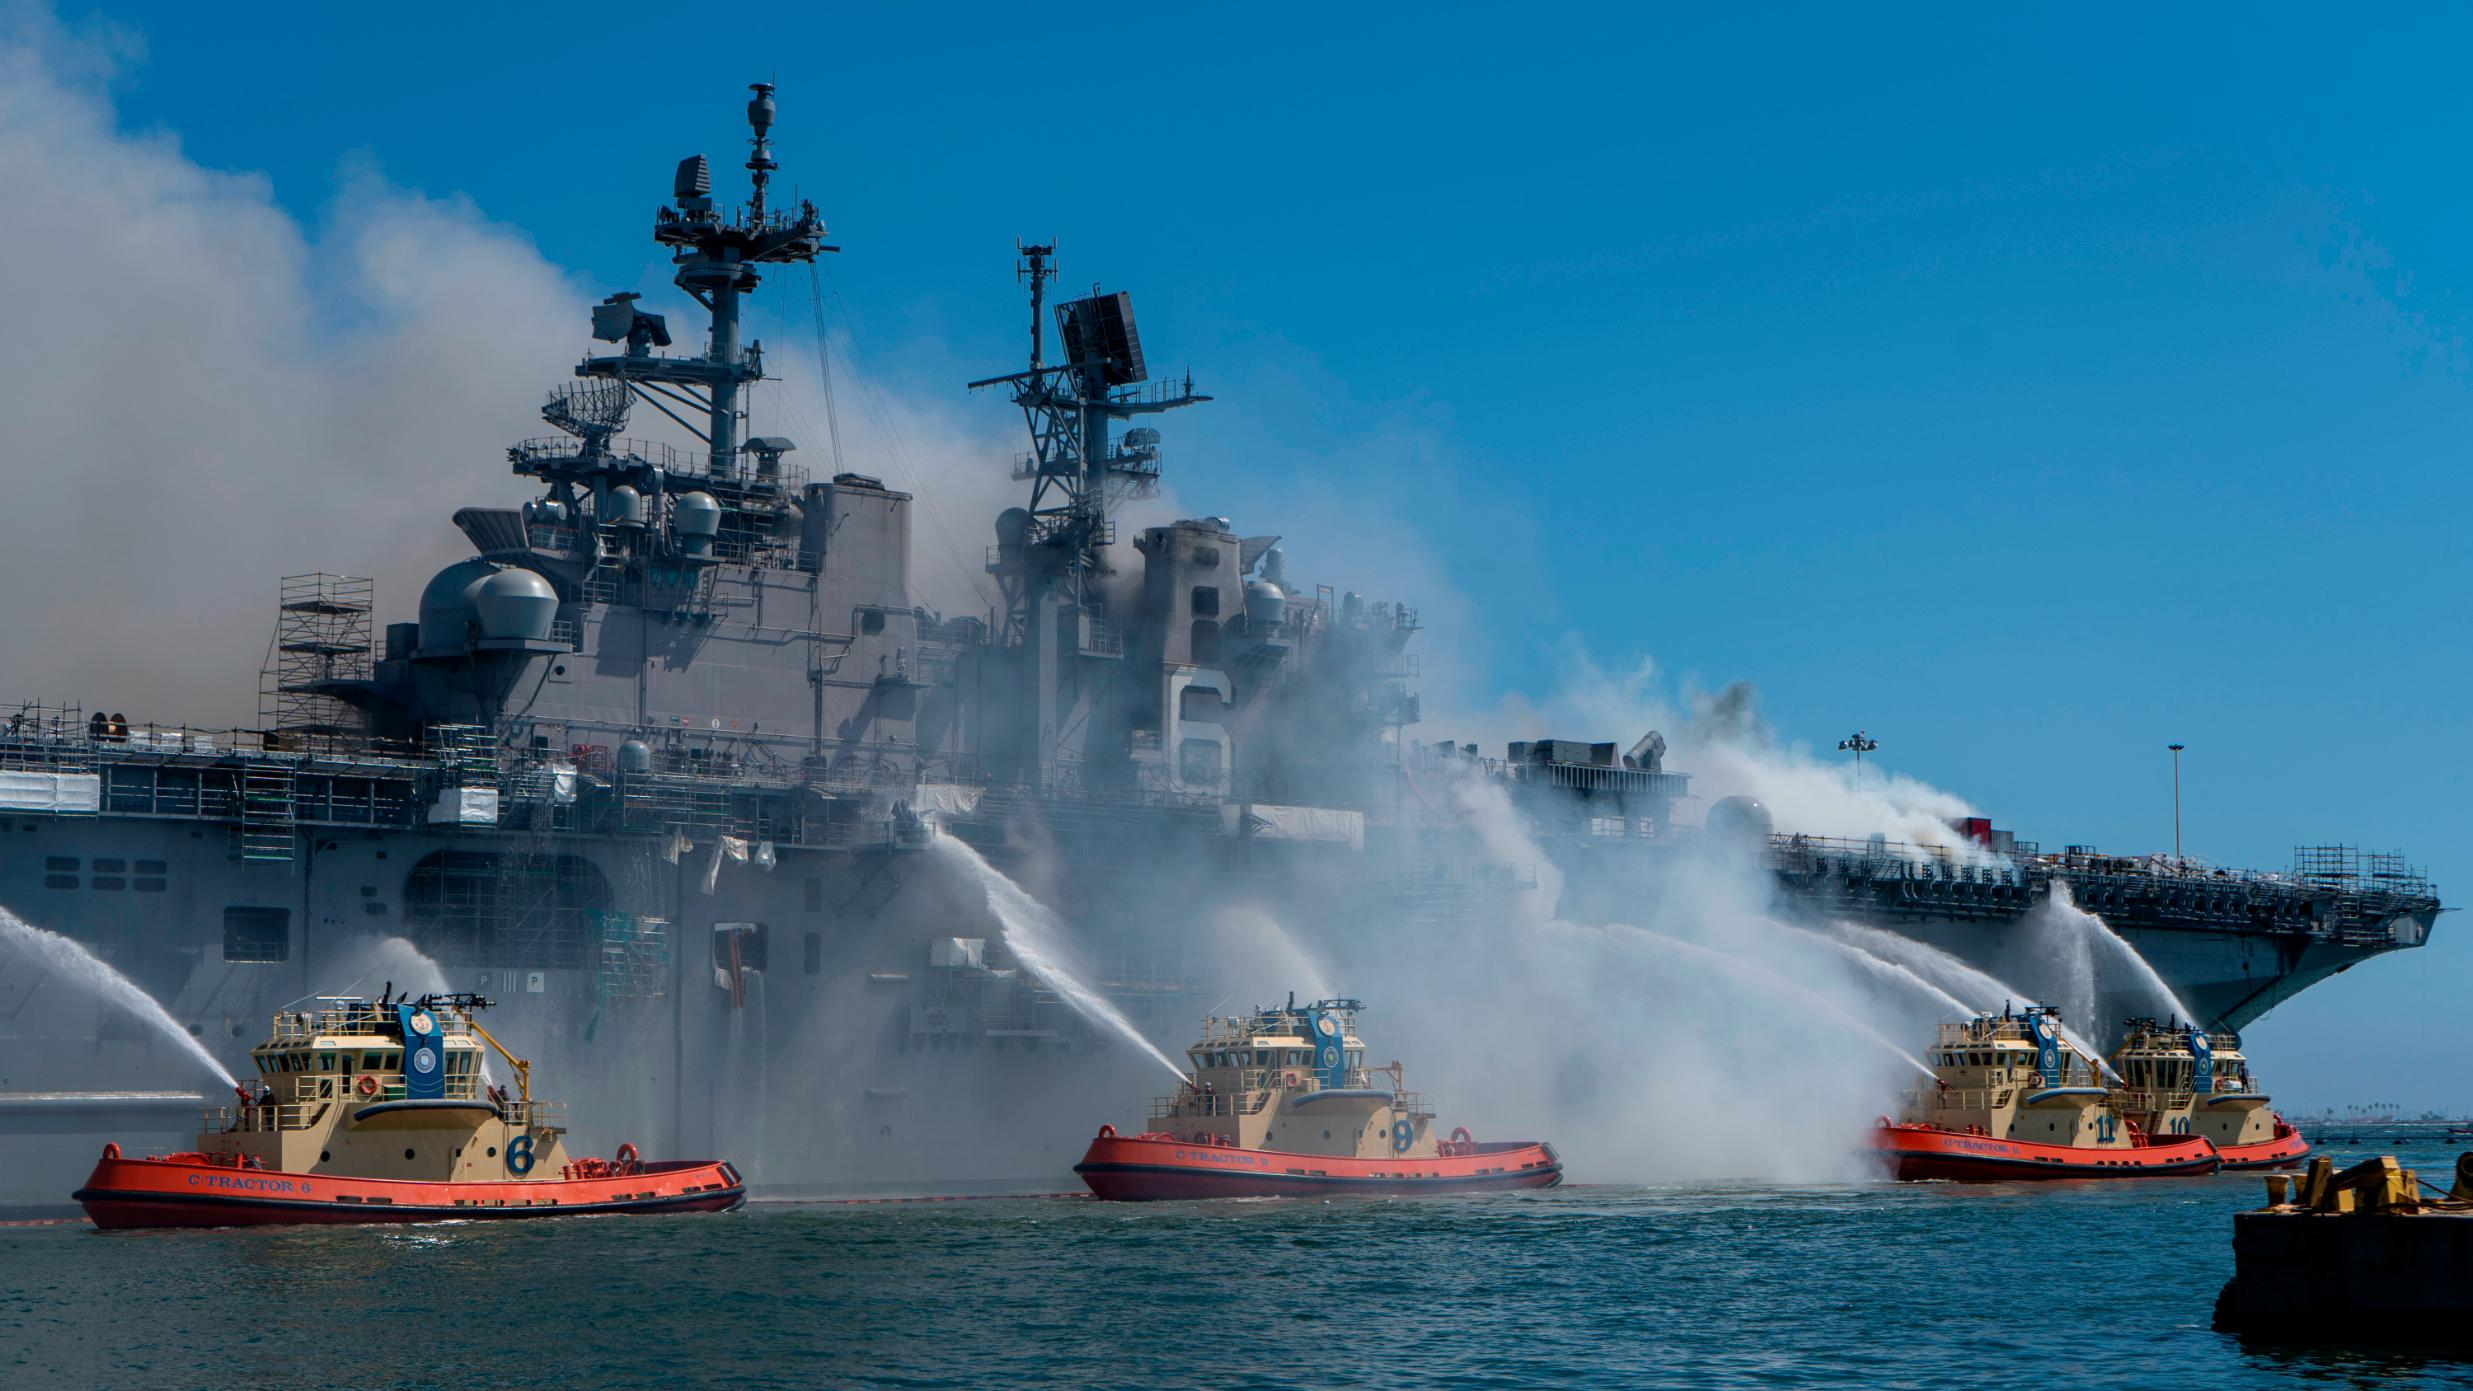 Navy to de-commission and scrap warship USS Bonhomme Richard after major fire